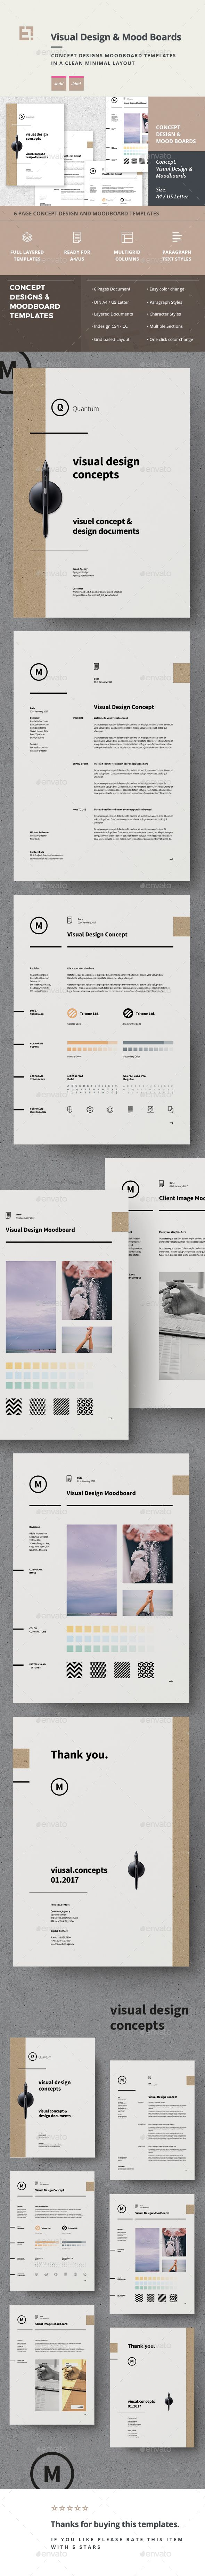 Concept Design Mood Board Templates Stationery TemplatesInvoice